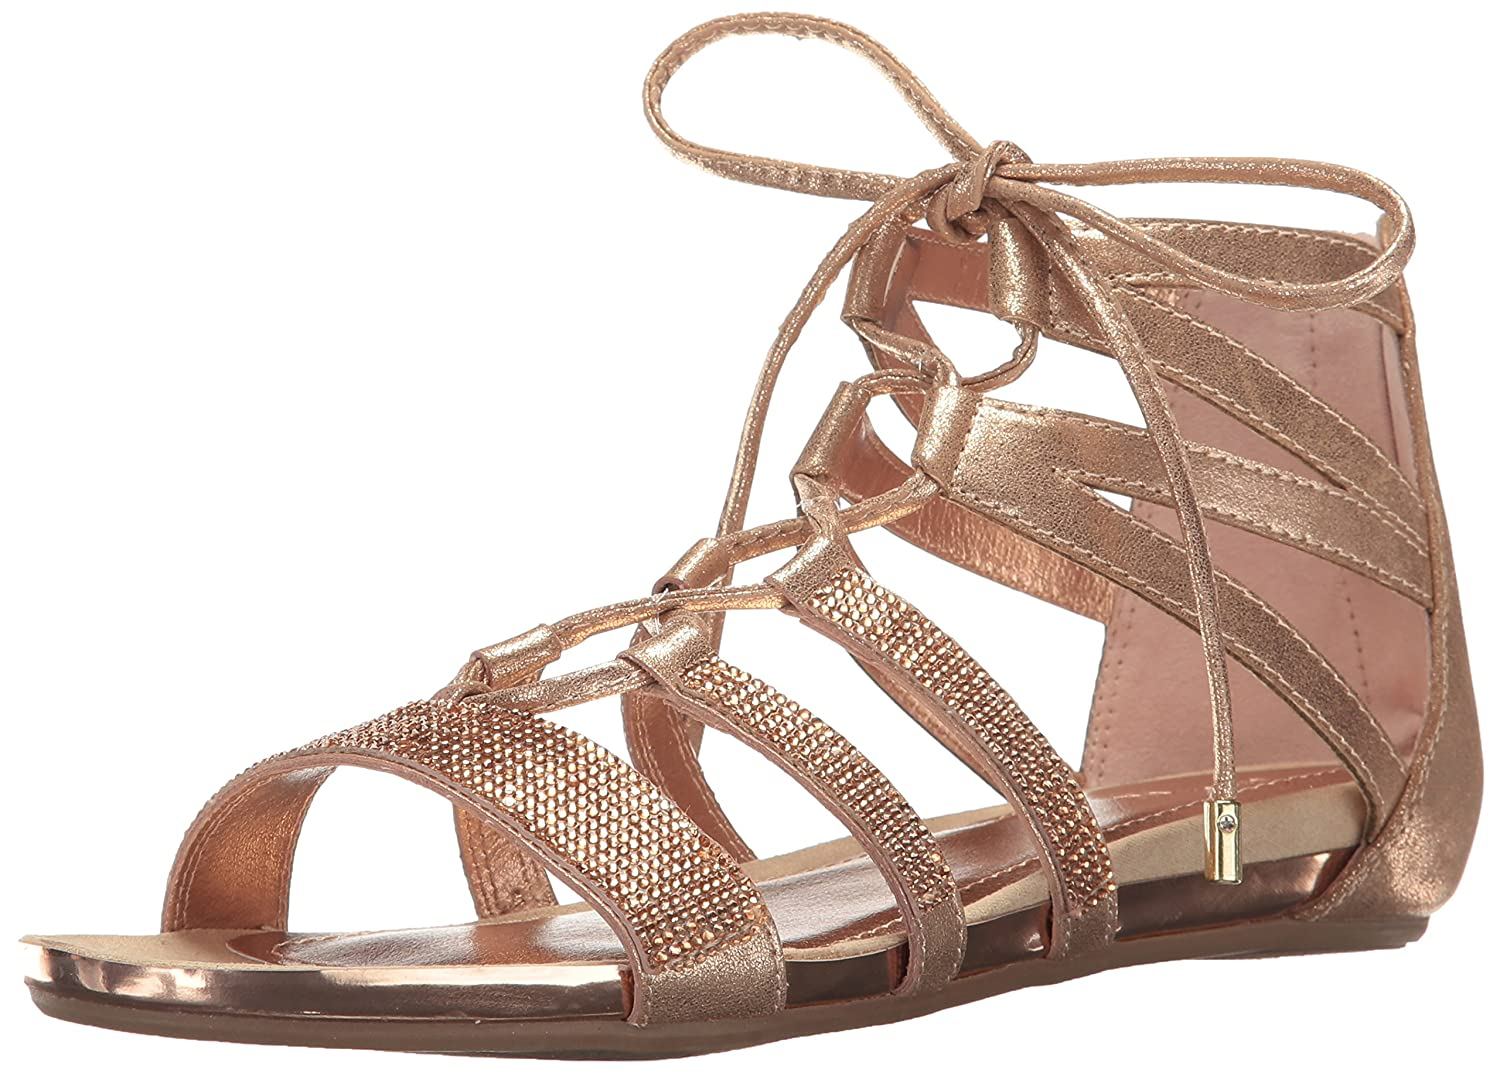 Light gold Kenneth Cole REACTION Womens Lost Look 2 Gladiator Sandal